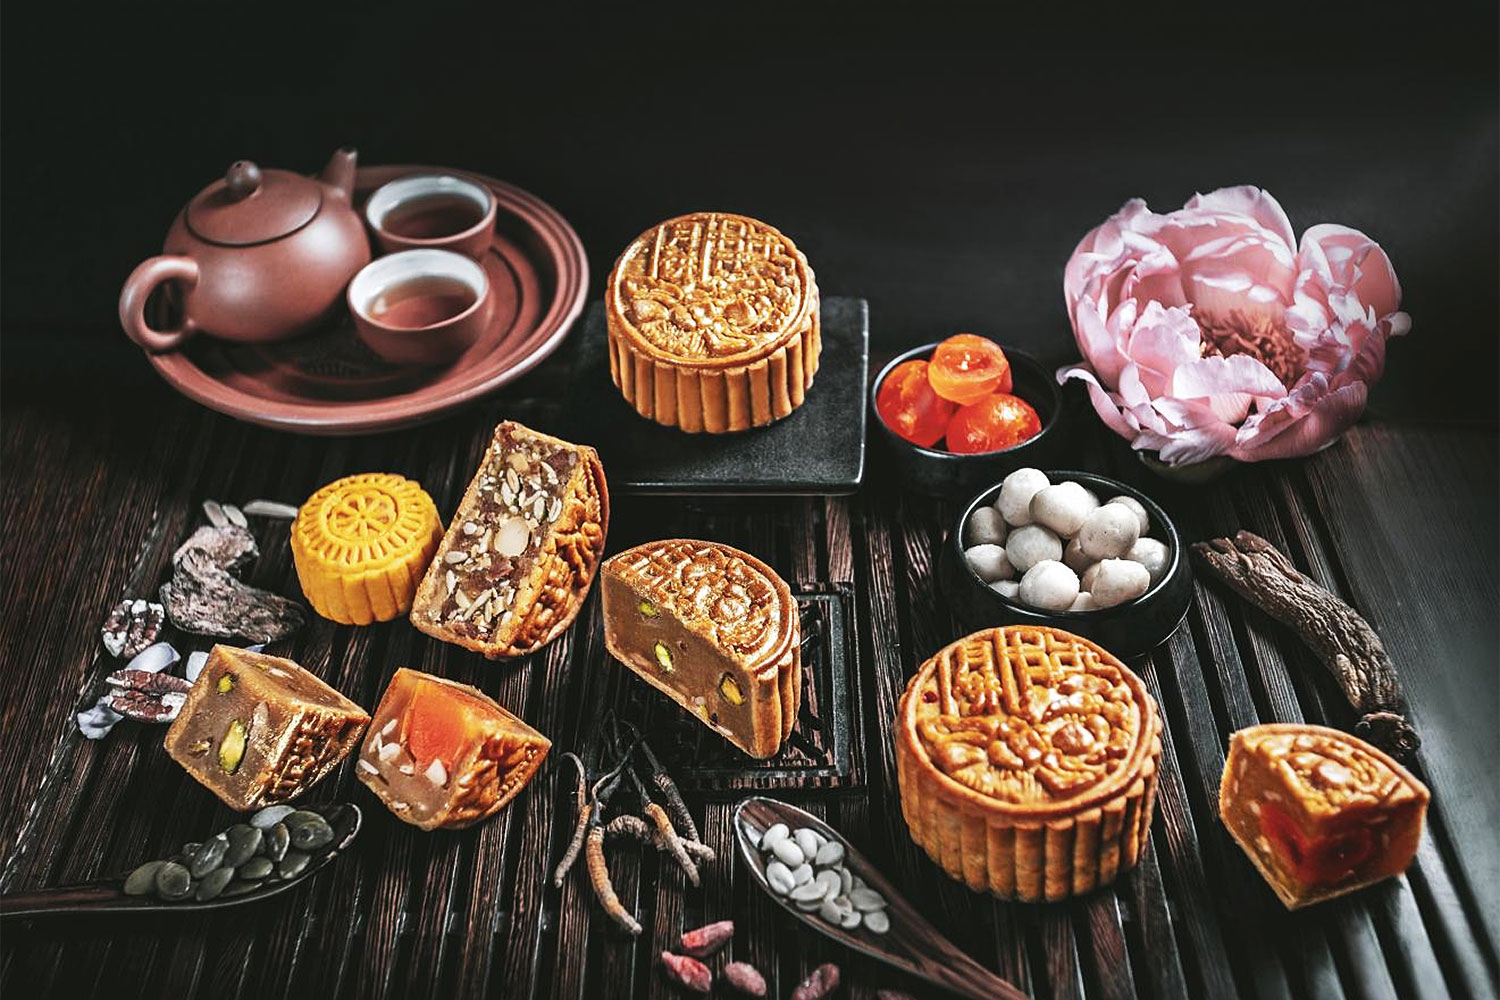 Get your mooncakes